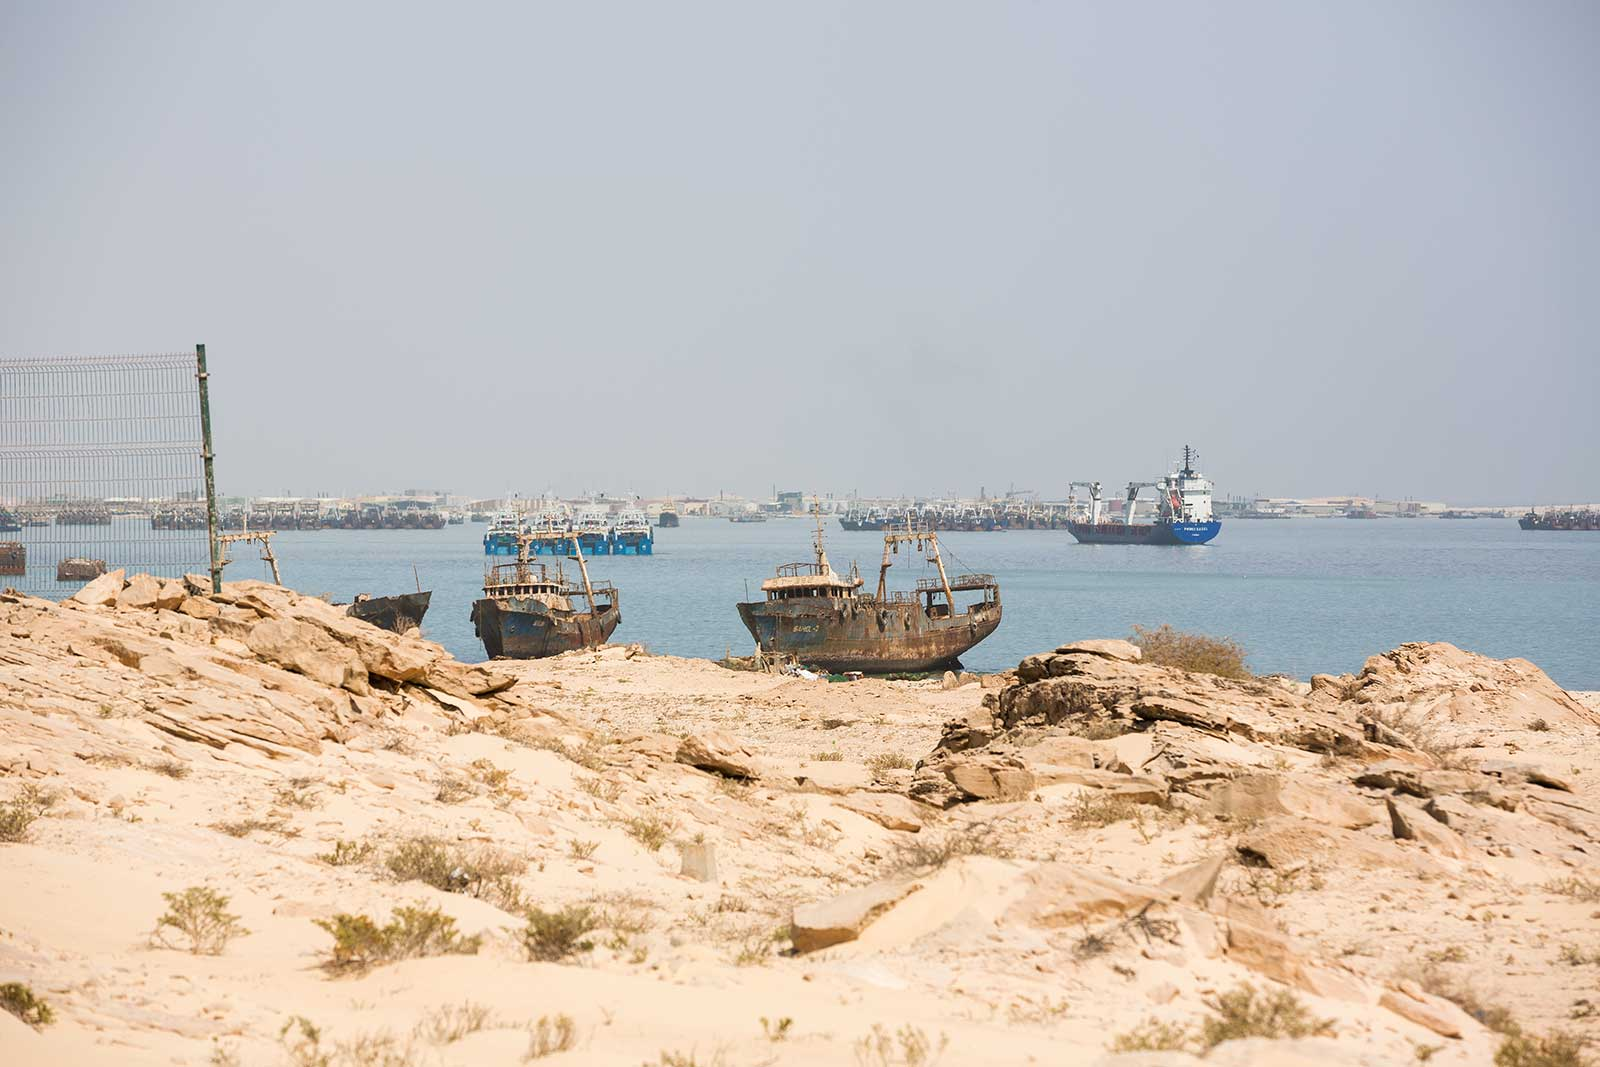 The view off the coast of Mauritania's Bay of Nouadhibou used to be spotted with rusting hulks in every direction. Today, this Ship Breaking Yard  is almost gone, due to an injection of capital from the Chinese.